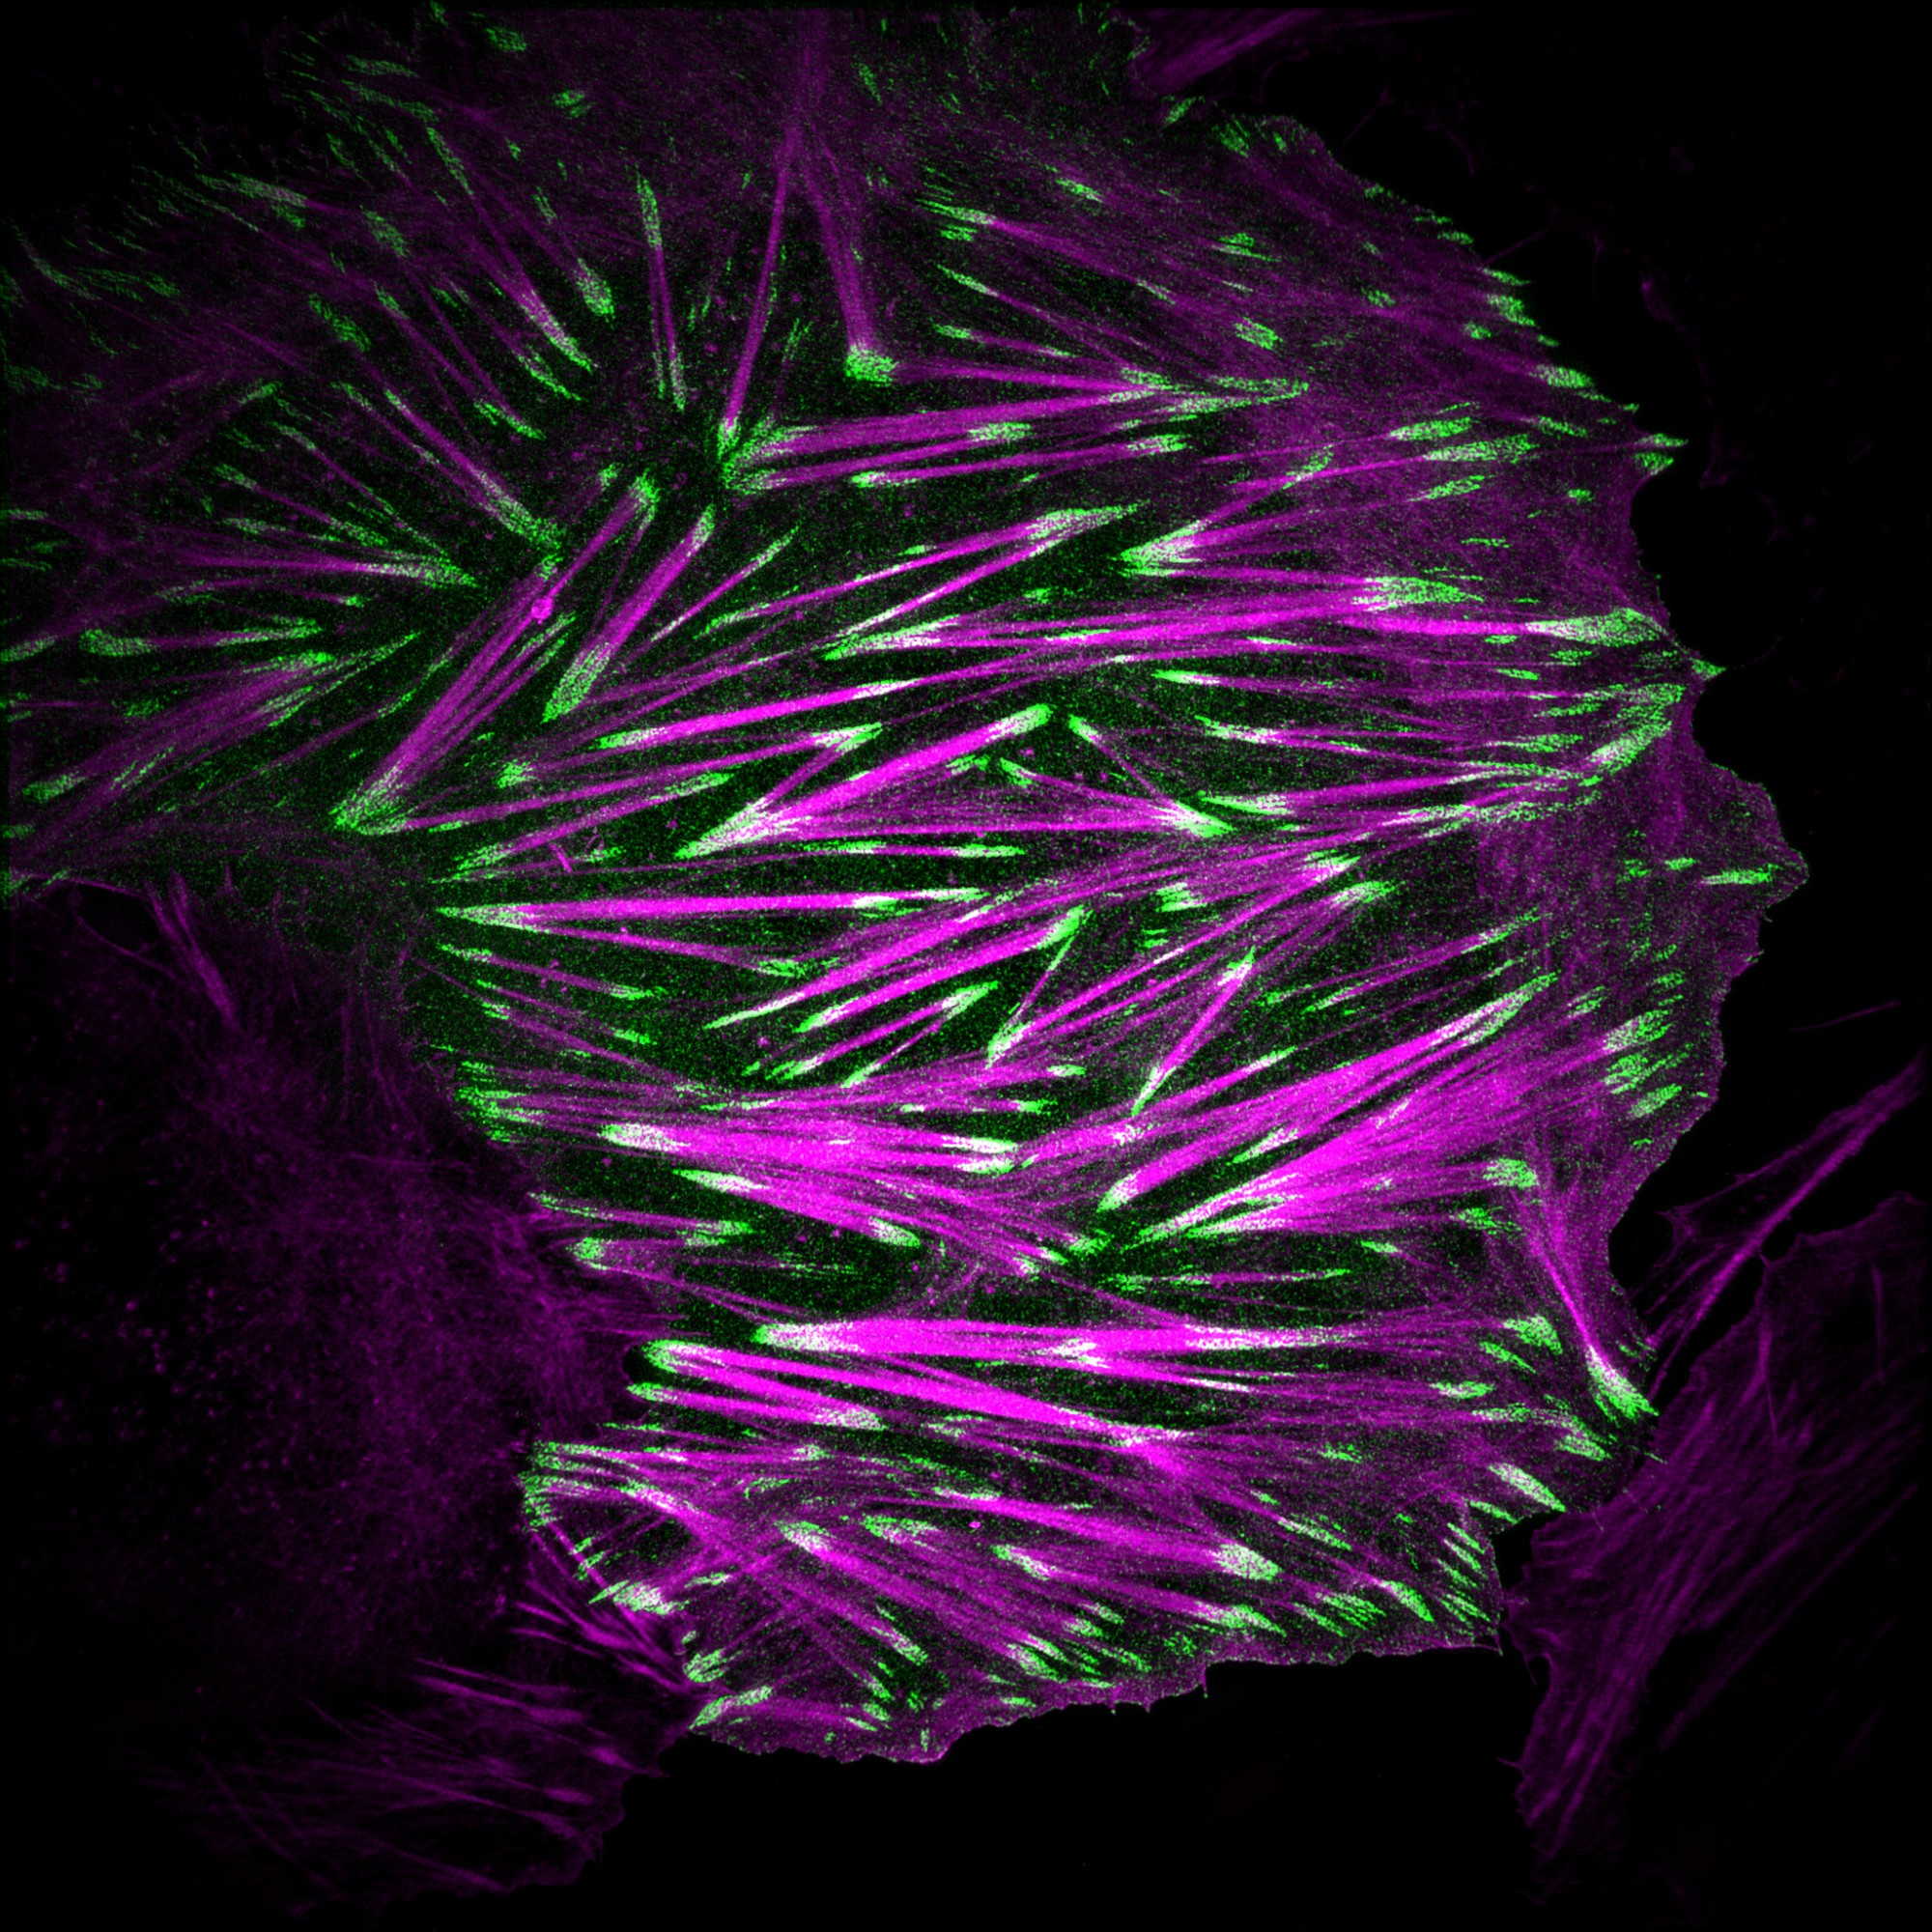 An osteosarcoma cell labelled to visualize the actin cytoskeleton (magenta) and paxillin (green). Image acquired using a structured illumination microscope.